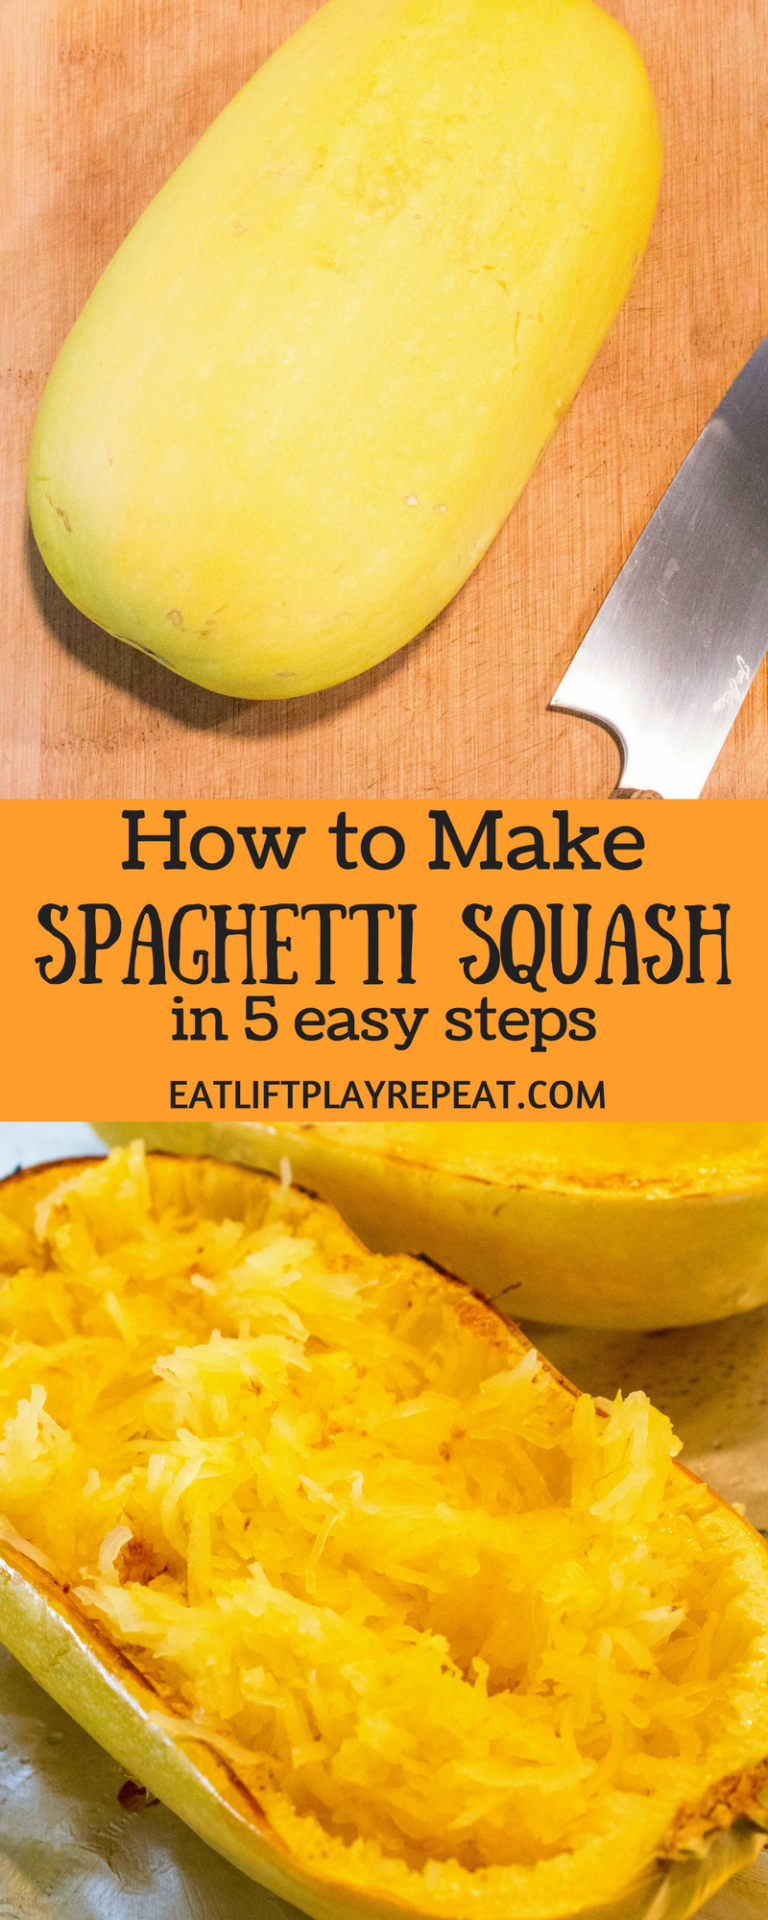 How to Cook Spaghetti Squash #spagettisquashrecipes